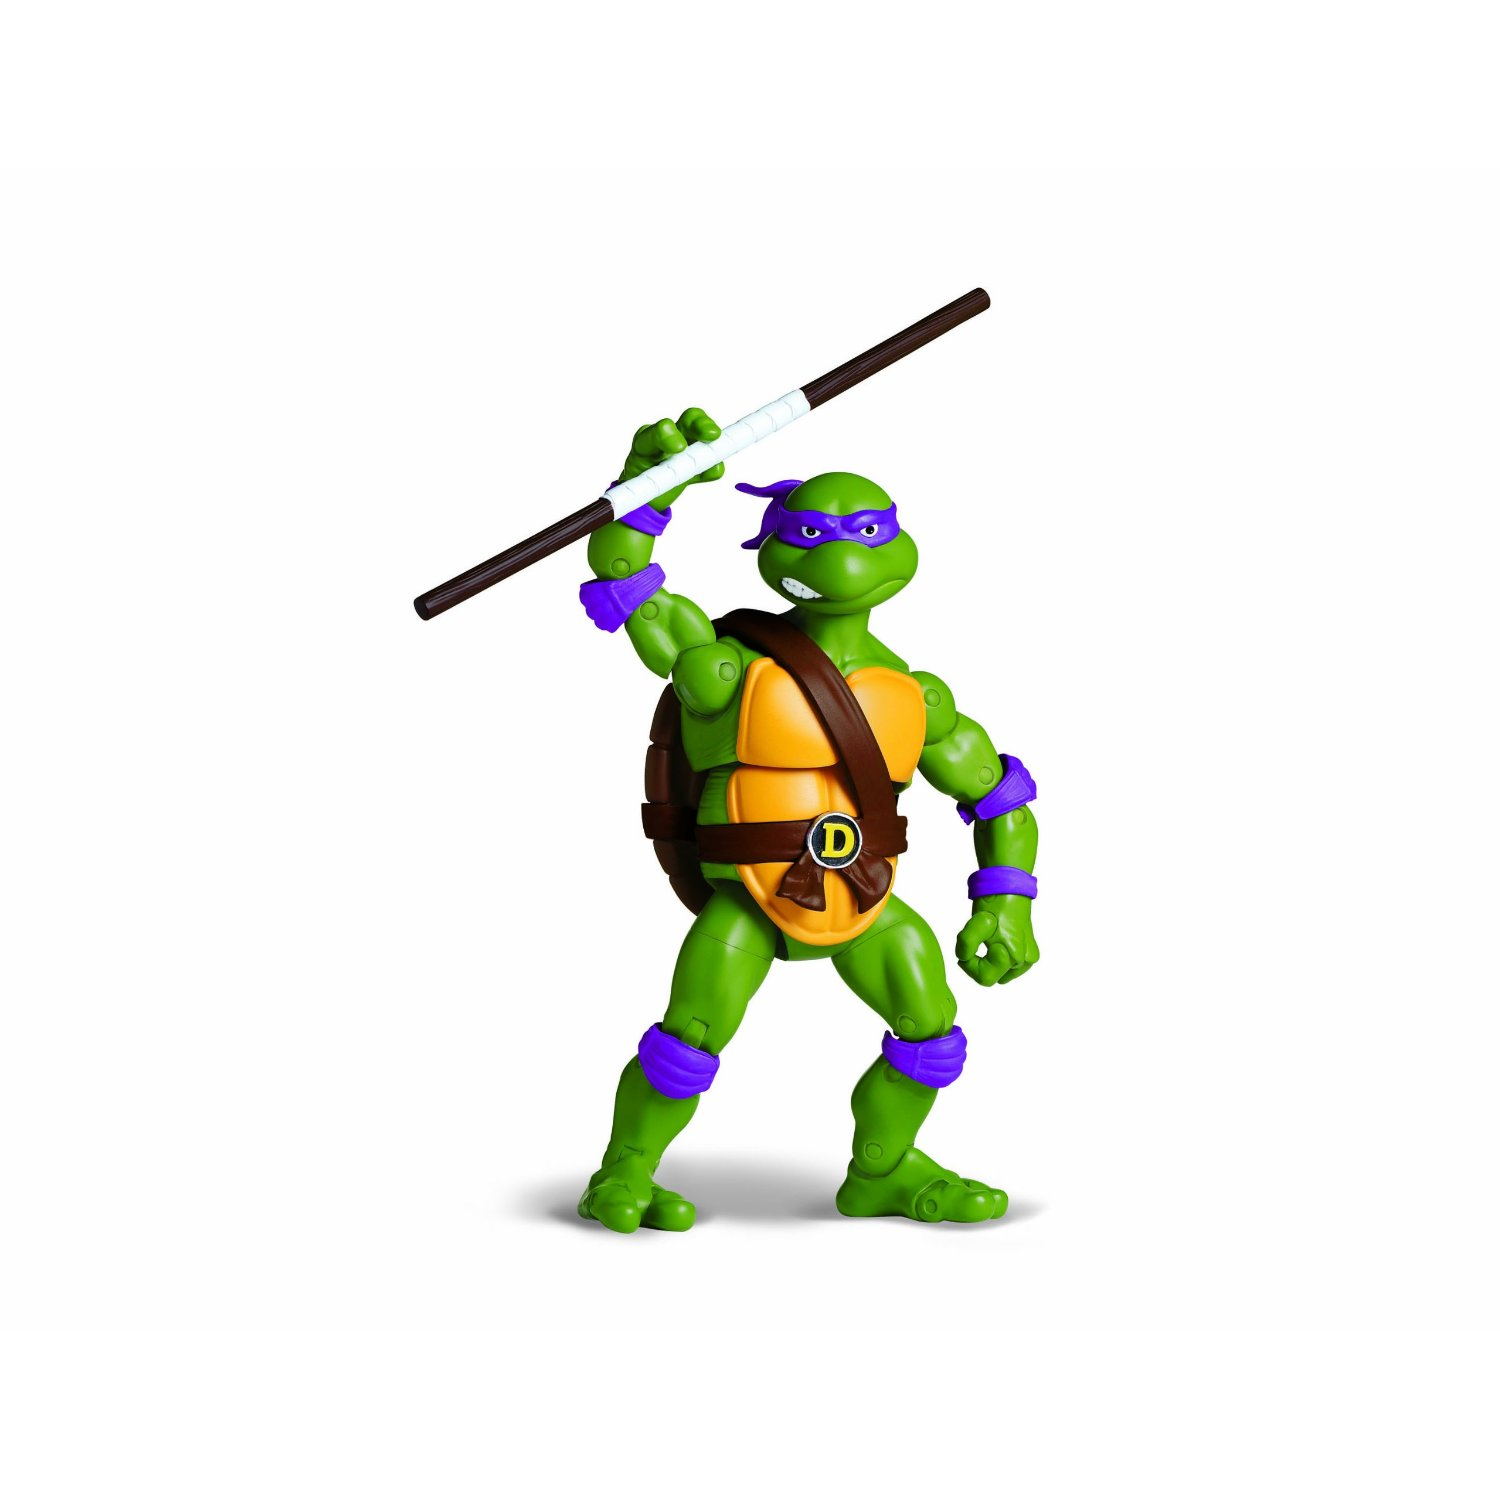 Ninja Turtles Wallpaper: Donatello Ninja Turtle Wallpaper